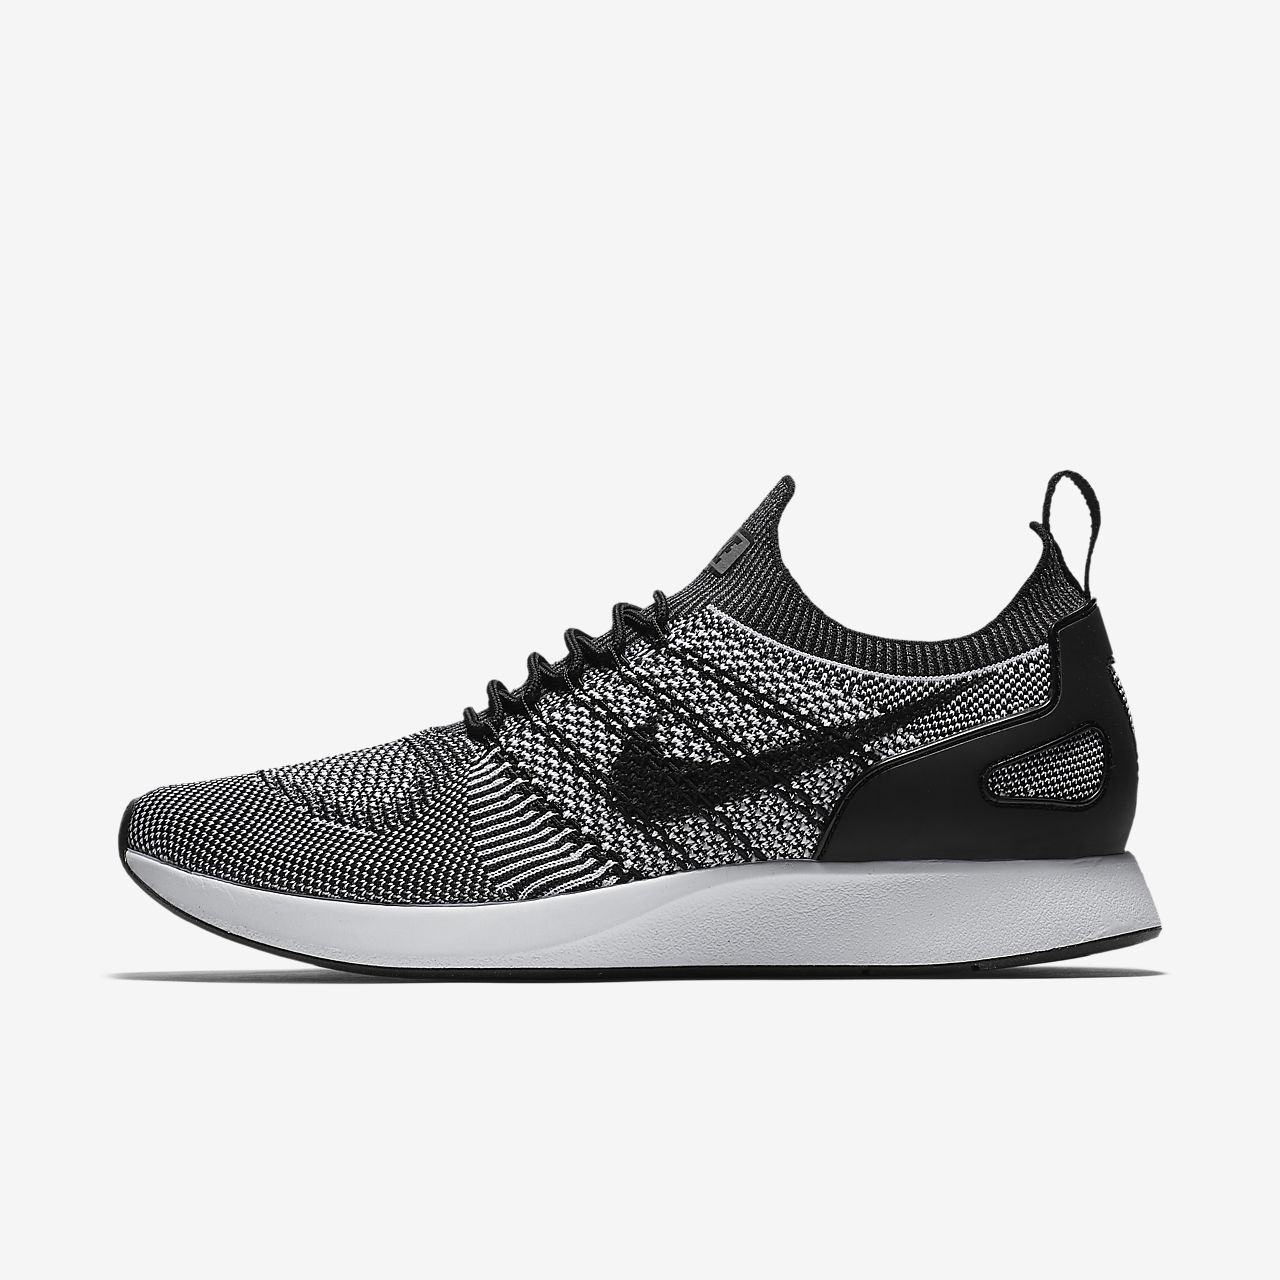 9f35d848fed4 Nike Air Zoom Mariah Flyknit Racer Men s Shoe. Nike.com